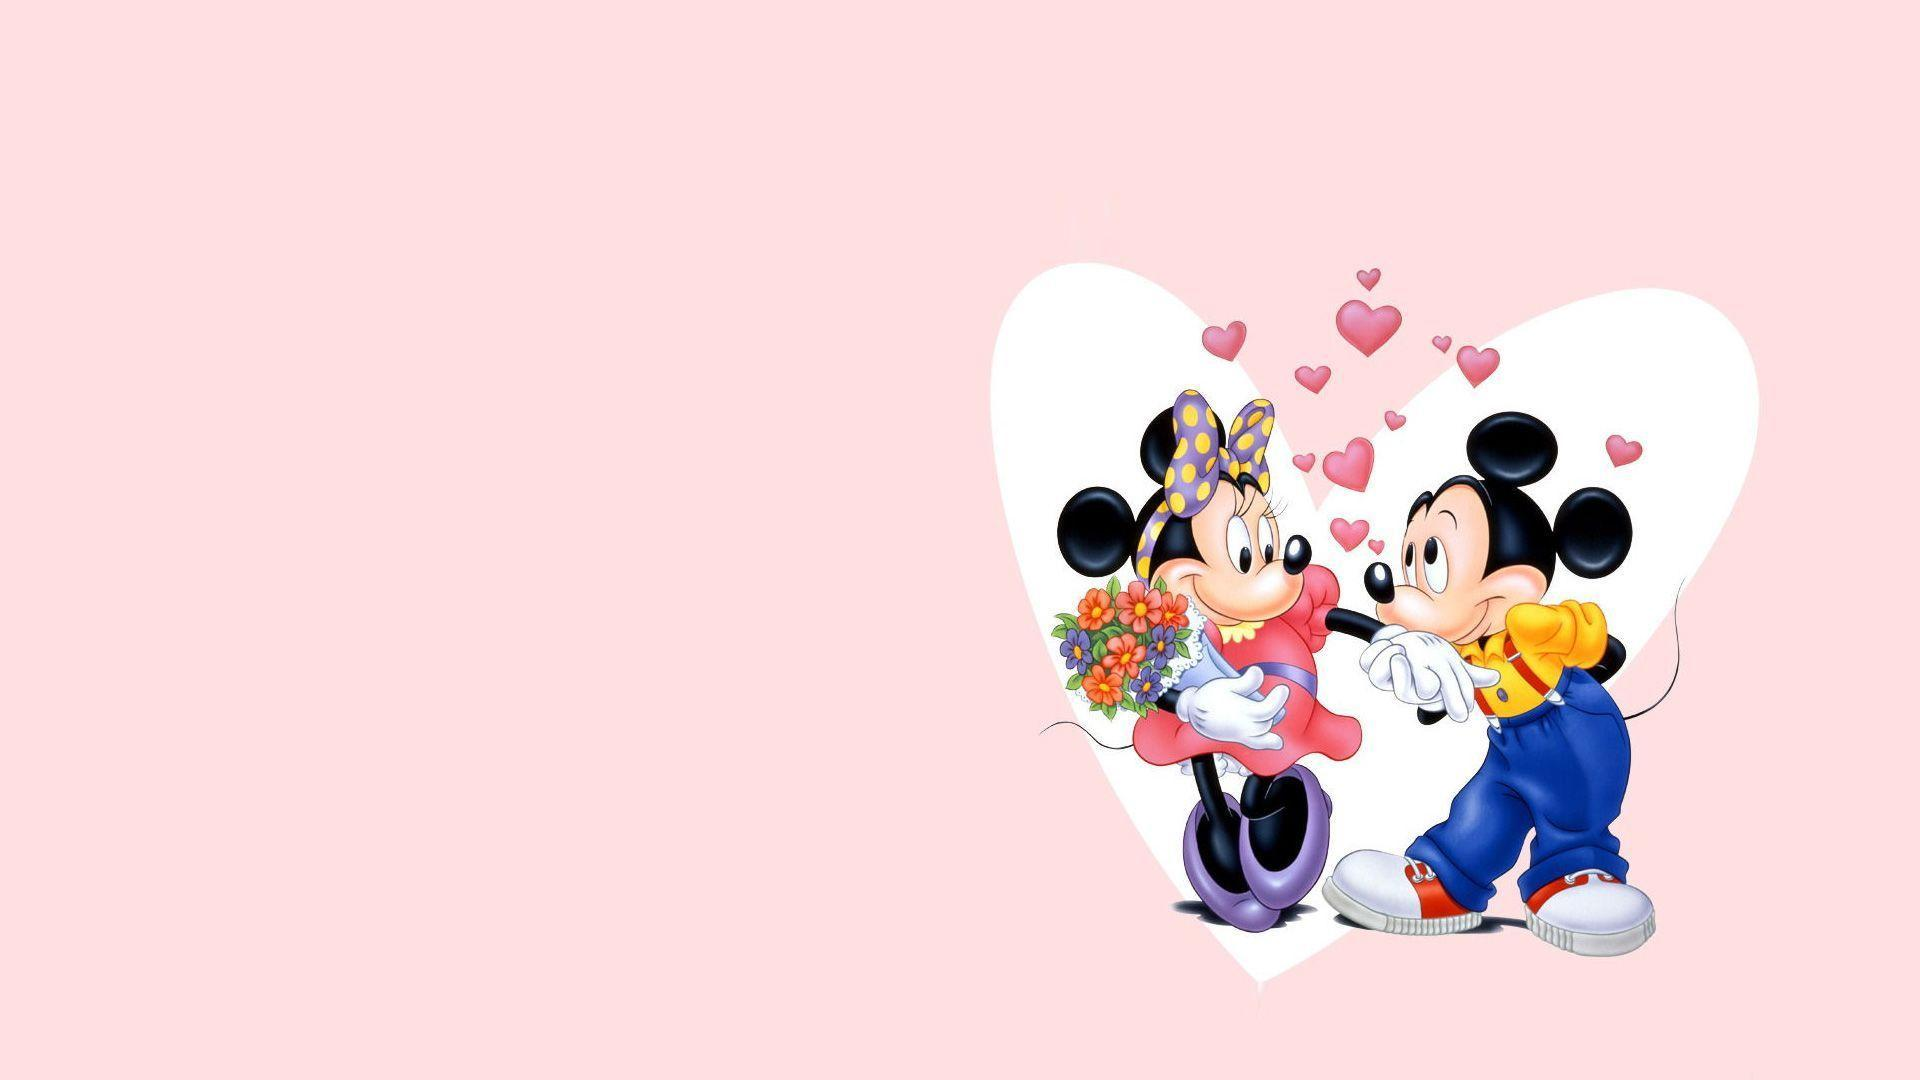 Mickey Mouse And Minnie Mouse Wallpapers | Foolhardi.